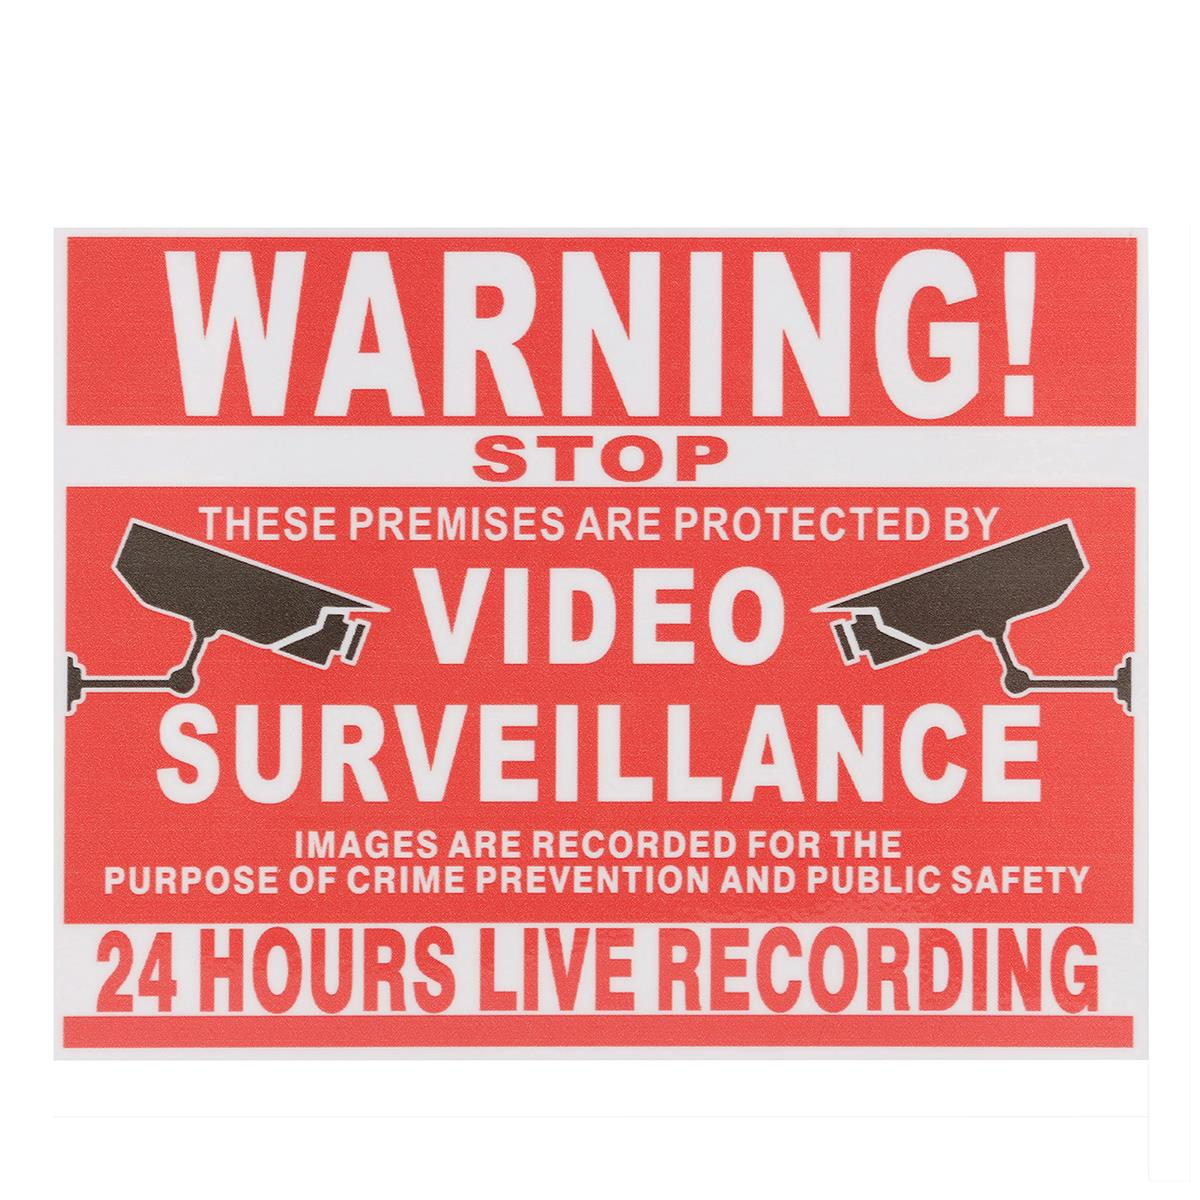 NEW Premises Projected By Video Surveillance CCTV Recording Sign Safety Sticker Warning